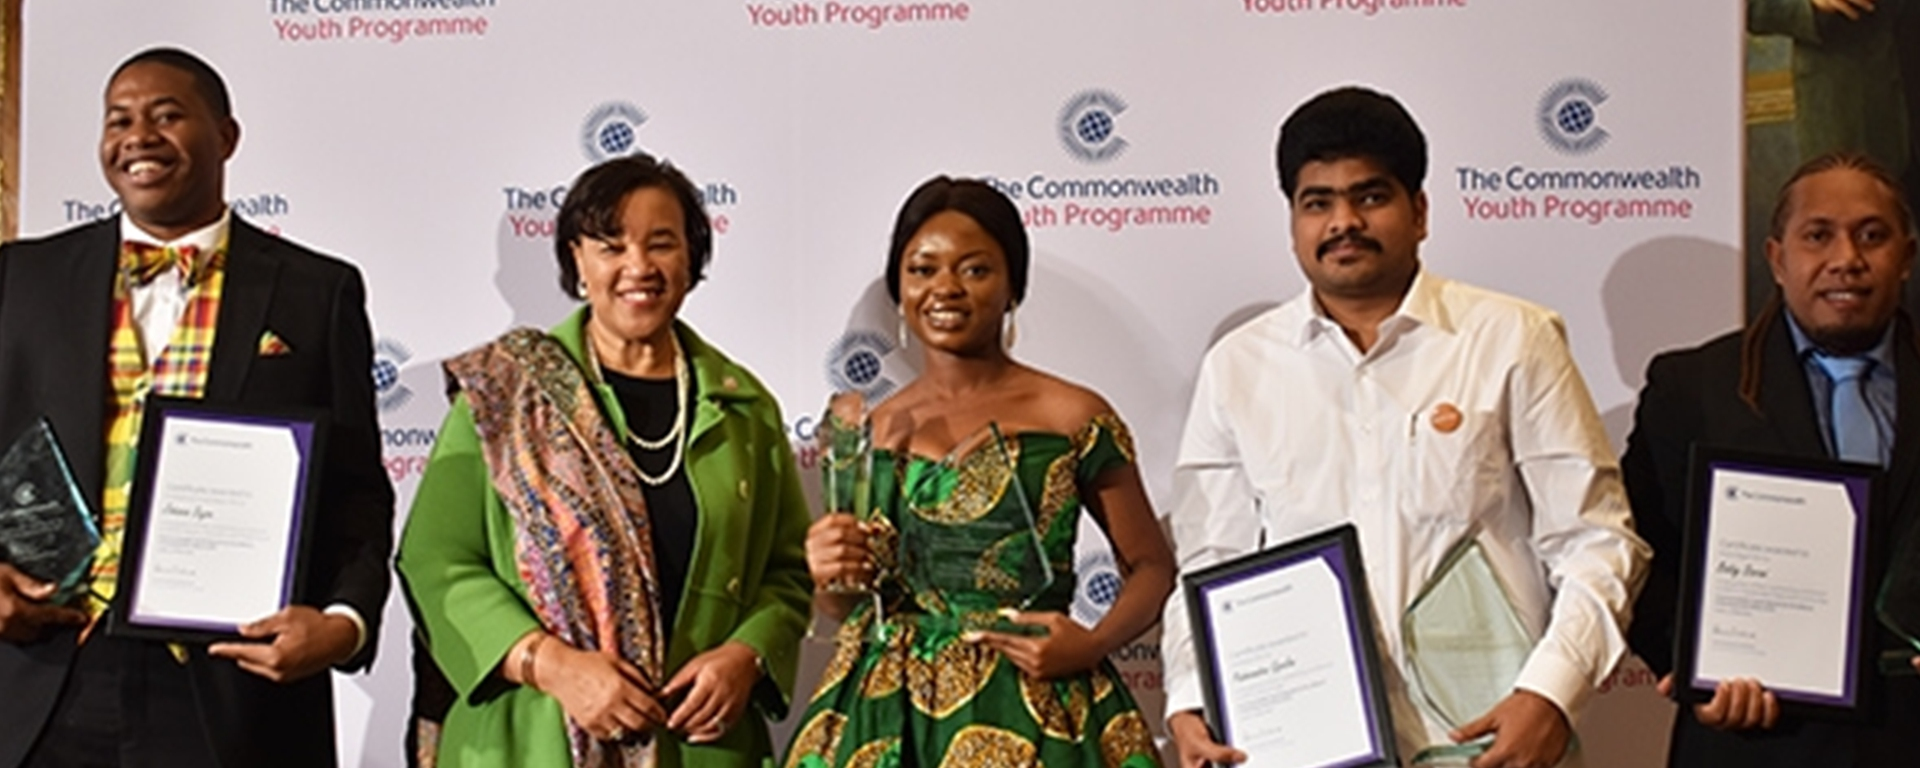 The Commonwealth - 2020 Commonwealth Youth Awards for Excellence in Development Movemeback African initiative cover image